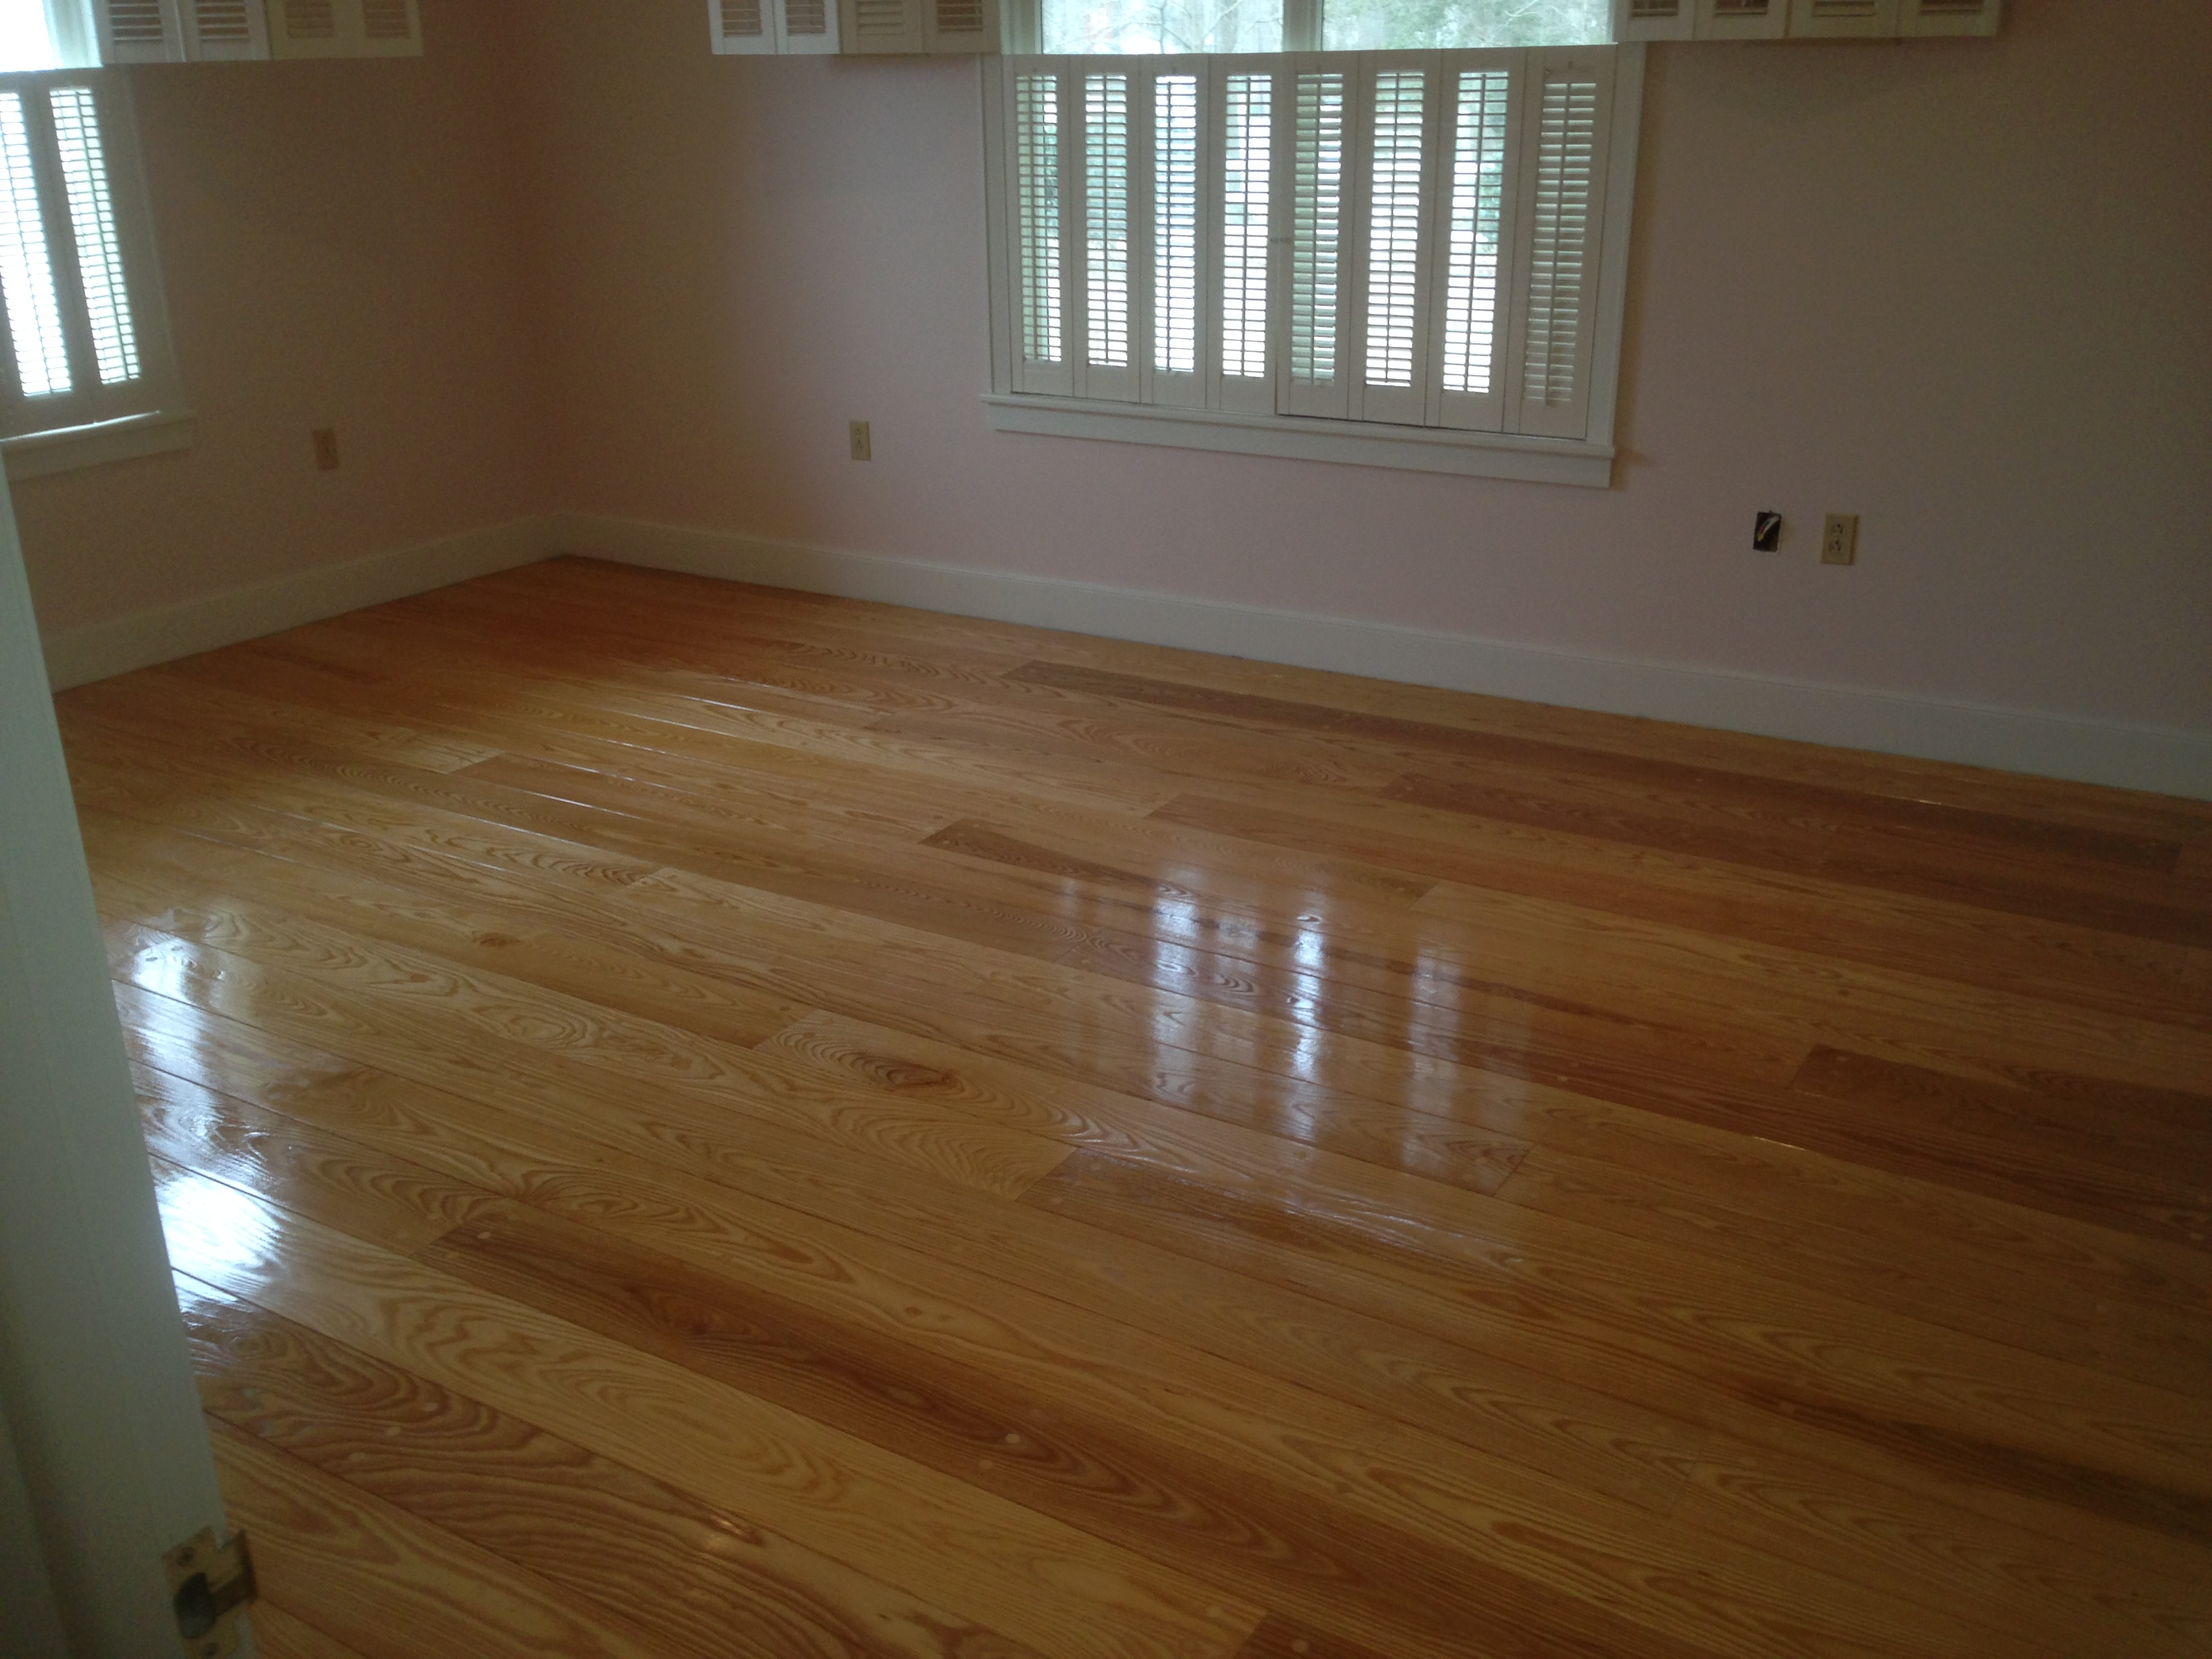 Eco Friendly Products. Sap Ash flooring finished using Waterlox Tung Oil